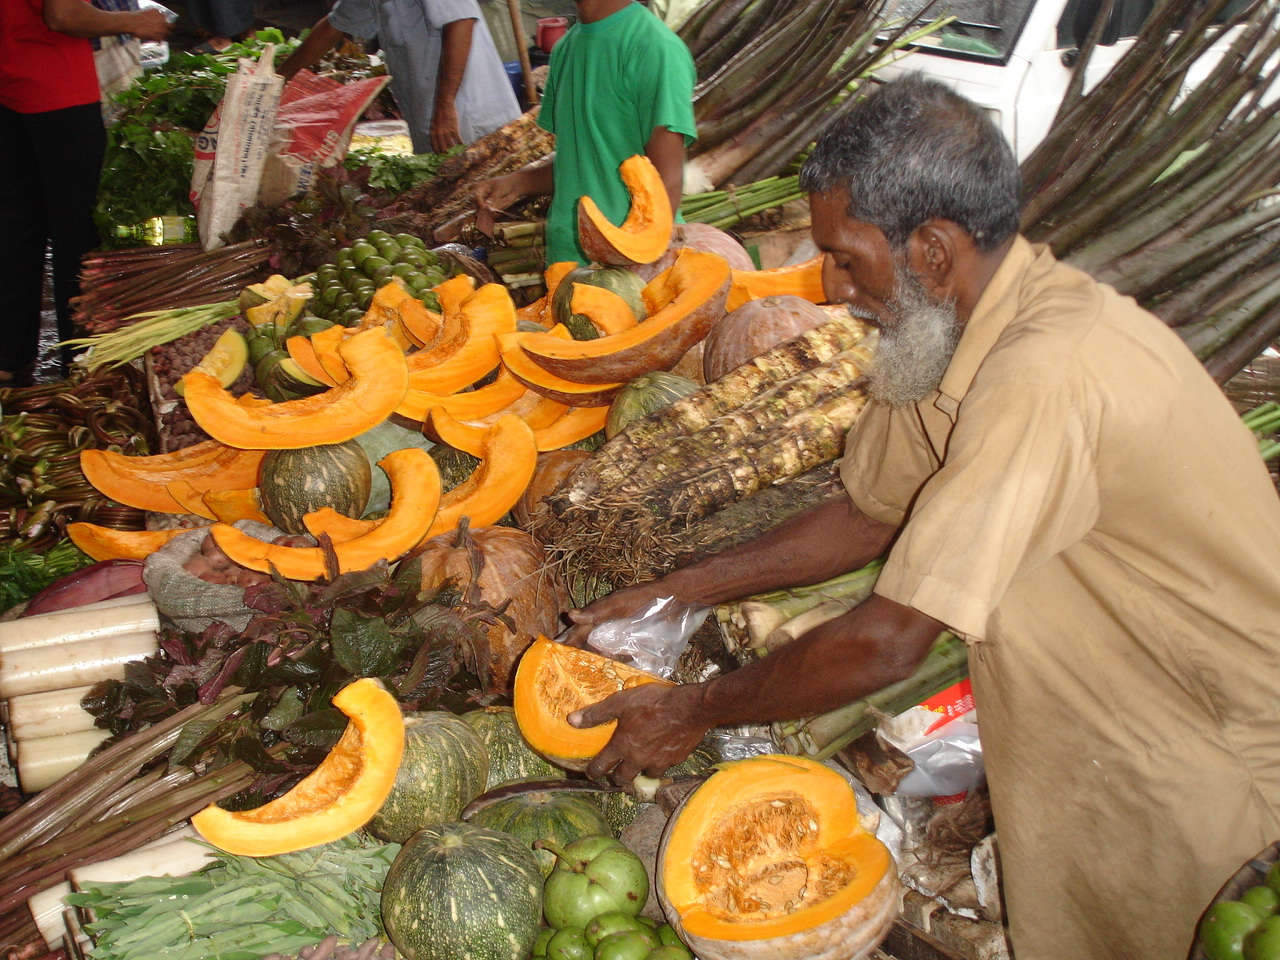 Bangladesh: How The Poor Cope With Rising Food Prices